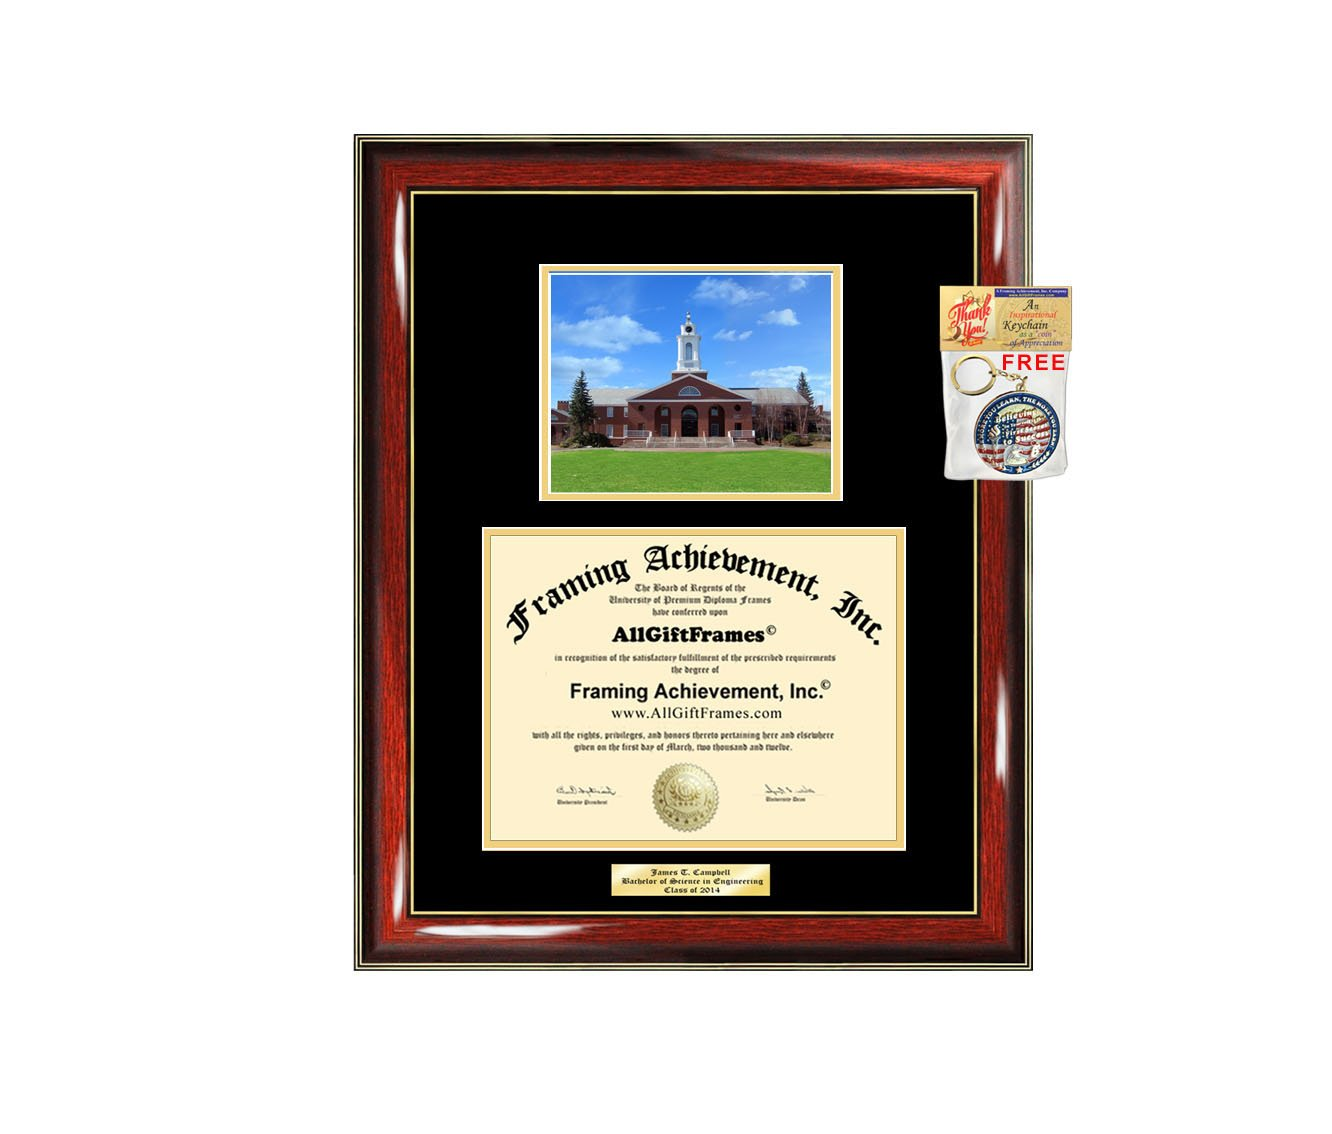 Diploma Frame Bentley University Bentley Graduation Gift Idea Engraved Picture Frames Engraving Degree Graduate Bachelor Masters MBA PHD Doctorate School